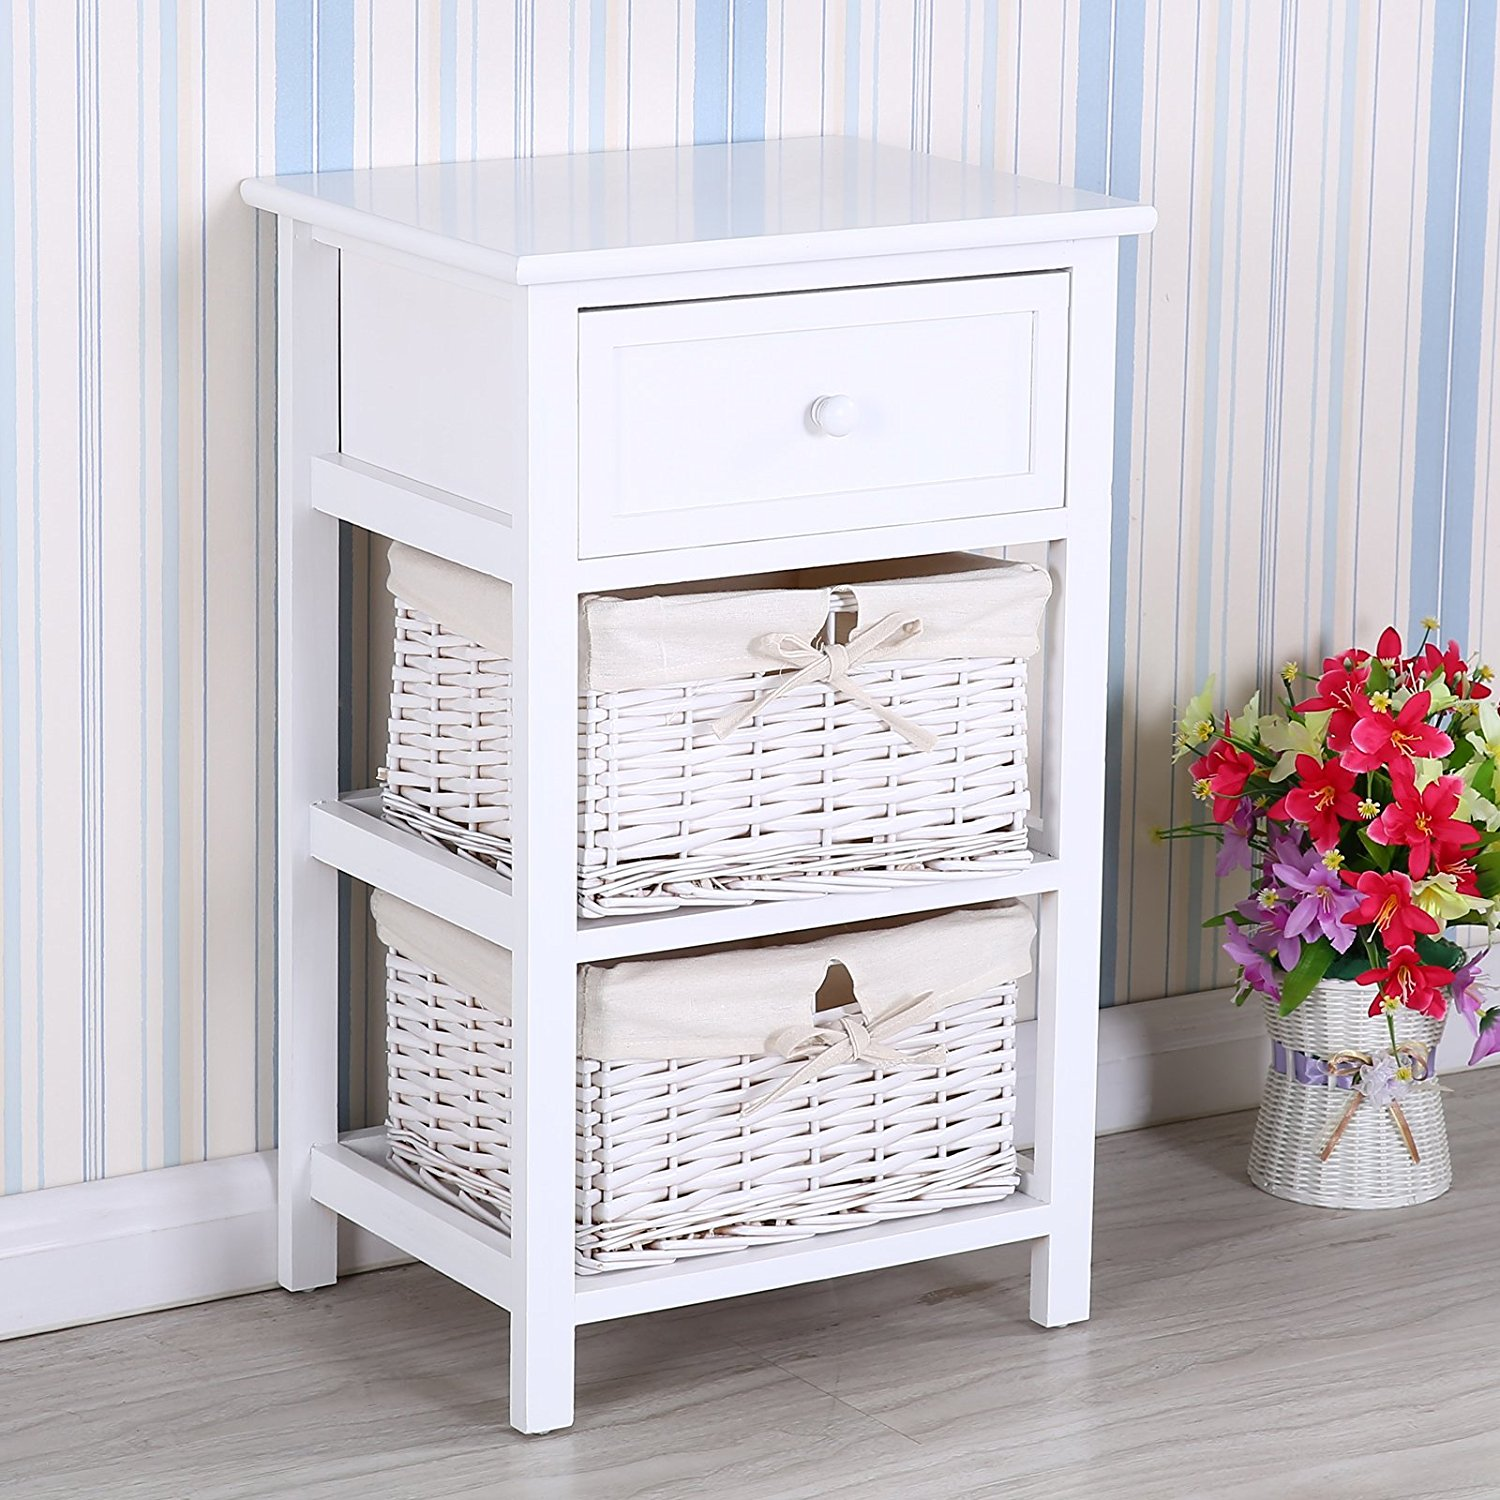 Etonnant Mecor Retro White Shabby Chic Nightstand End Side Bedside Table W/Wicker  Storage Wood